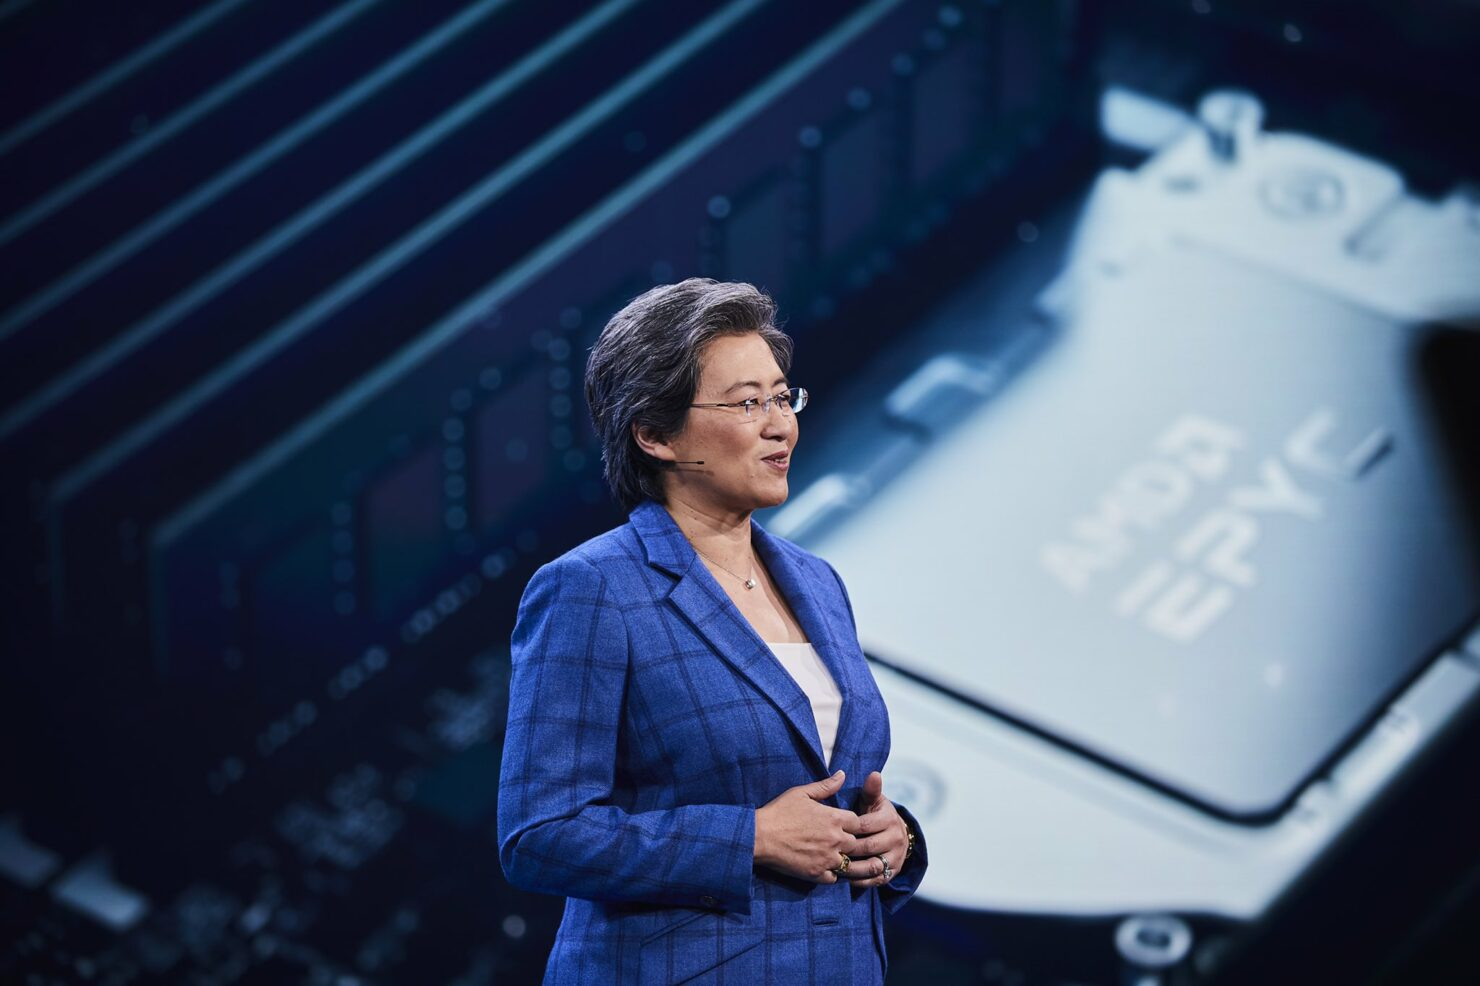 IEEE Robert N. Noyce Medal Awarded To AMD CEO Dr. Lisa Su For Pushing The Semiconductor Industry Forward